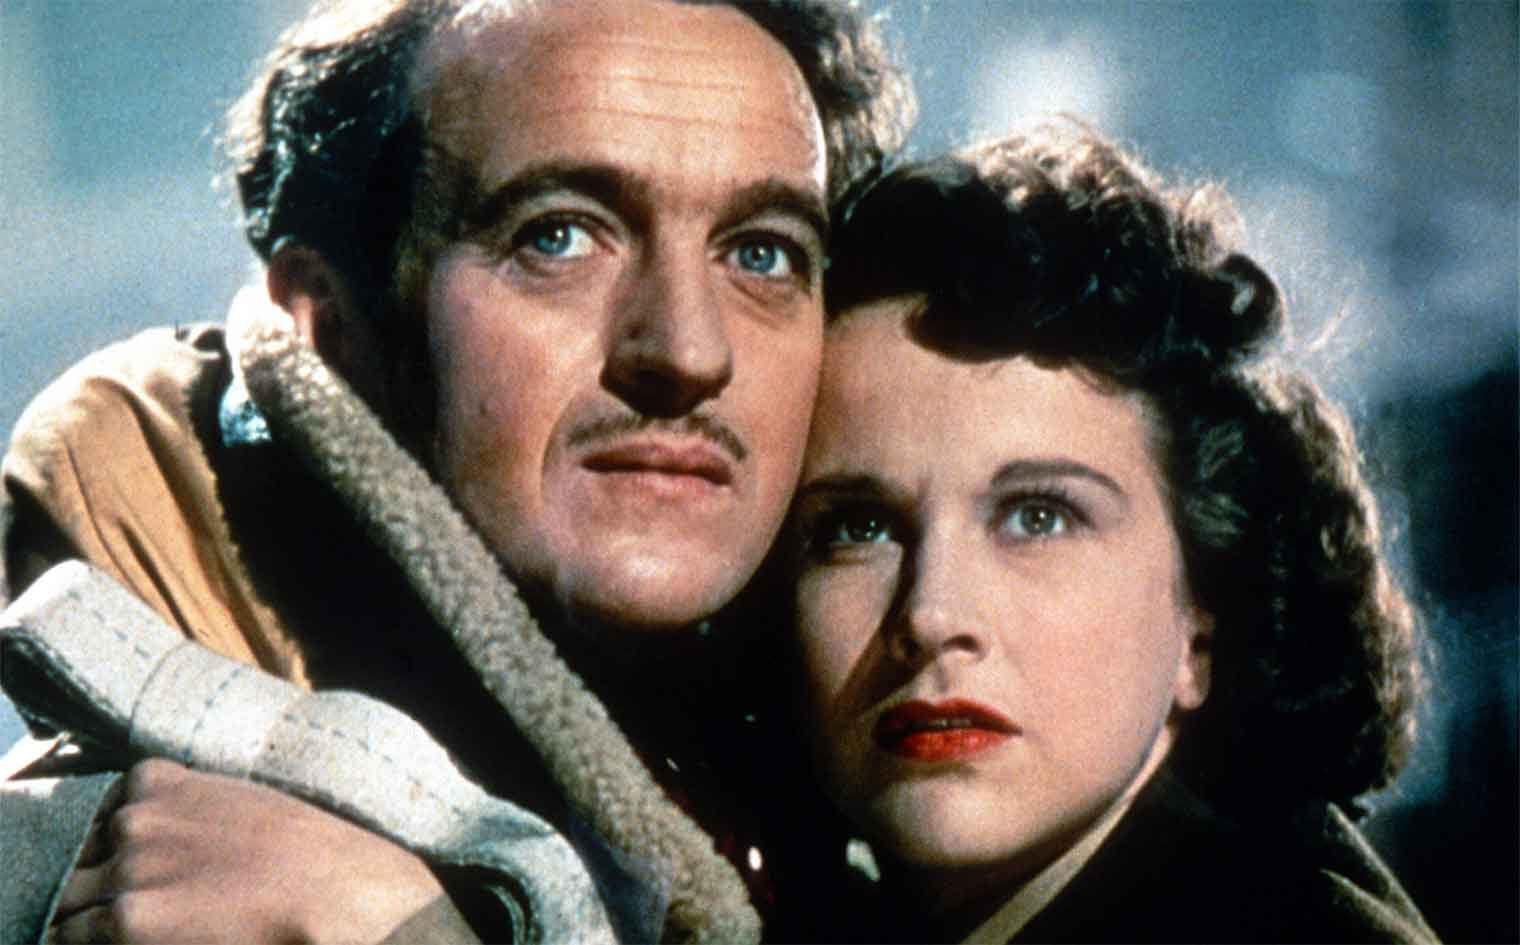 Powell & Pressburger's A MATTER OF LIFE AND DEATH